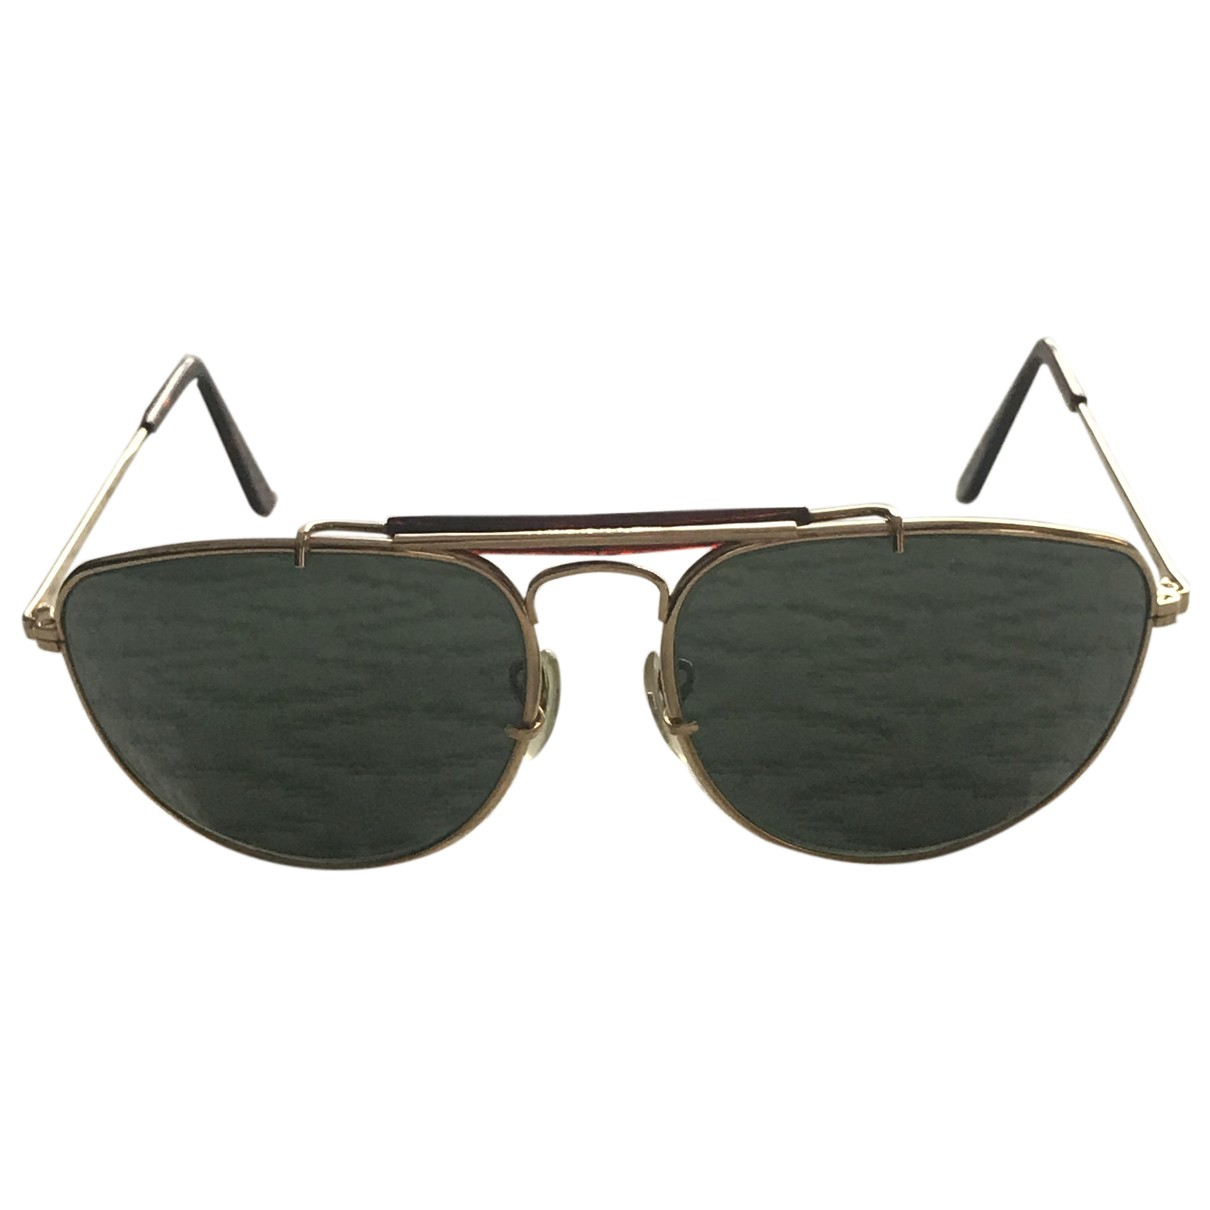 Ray-ban Aviator Gold Metal Sunglasses for Men N